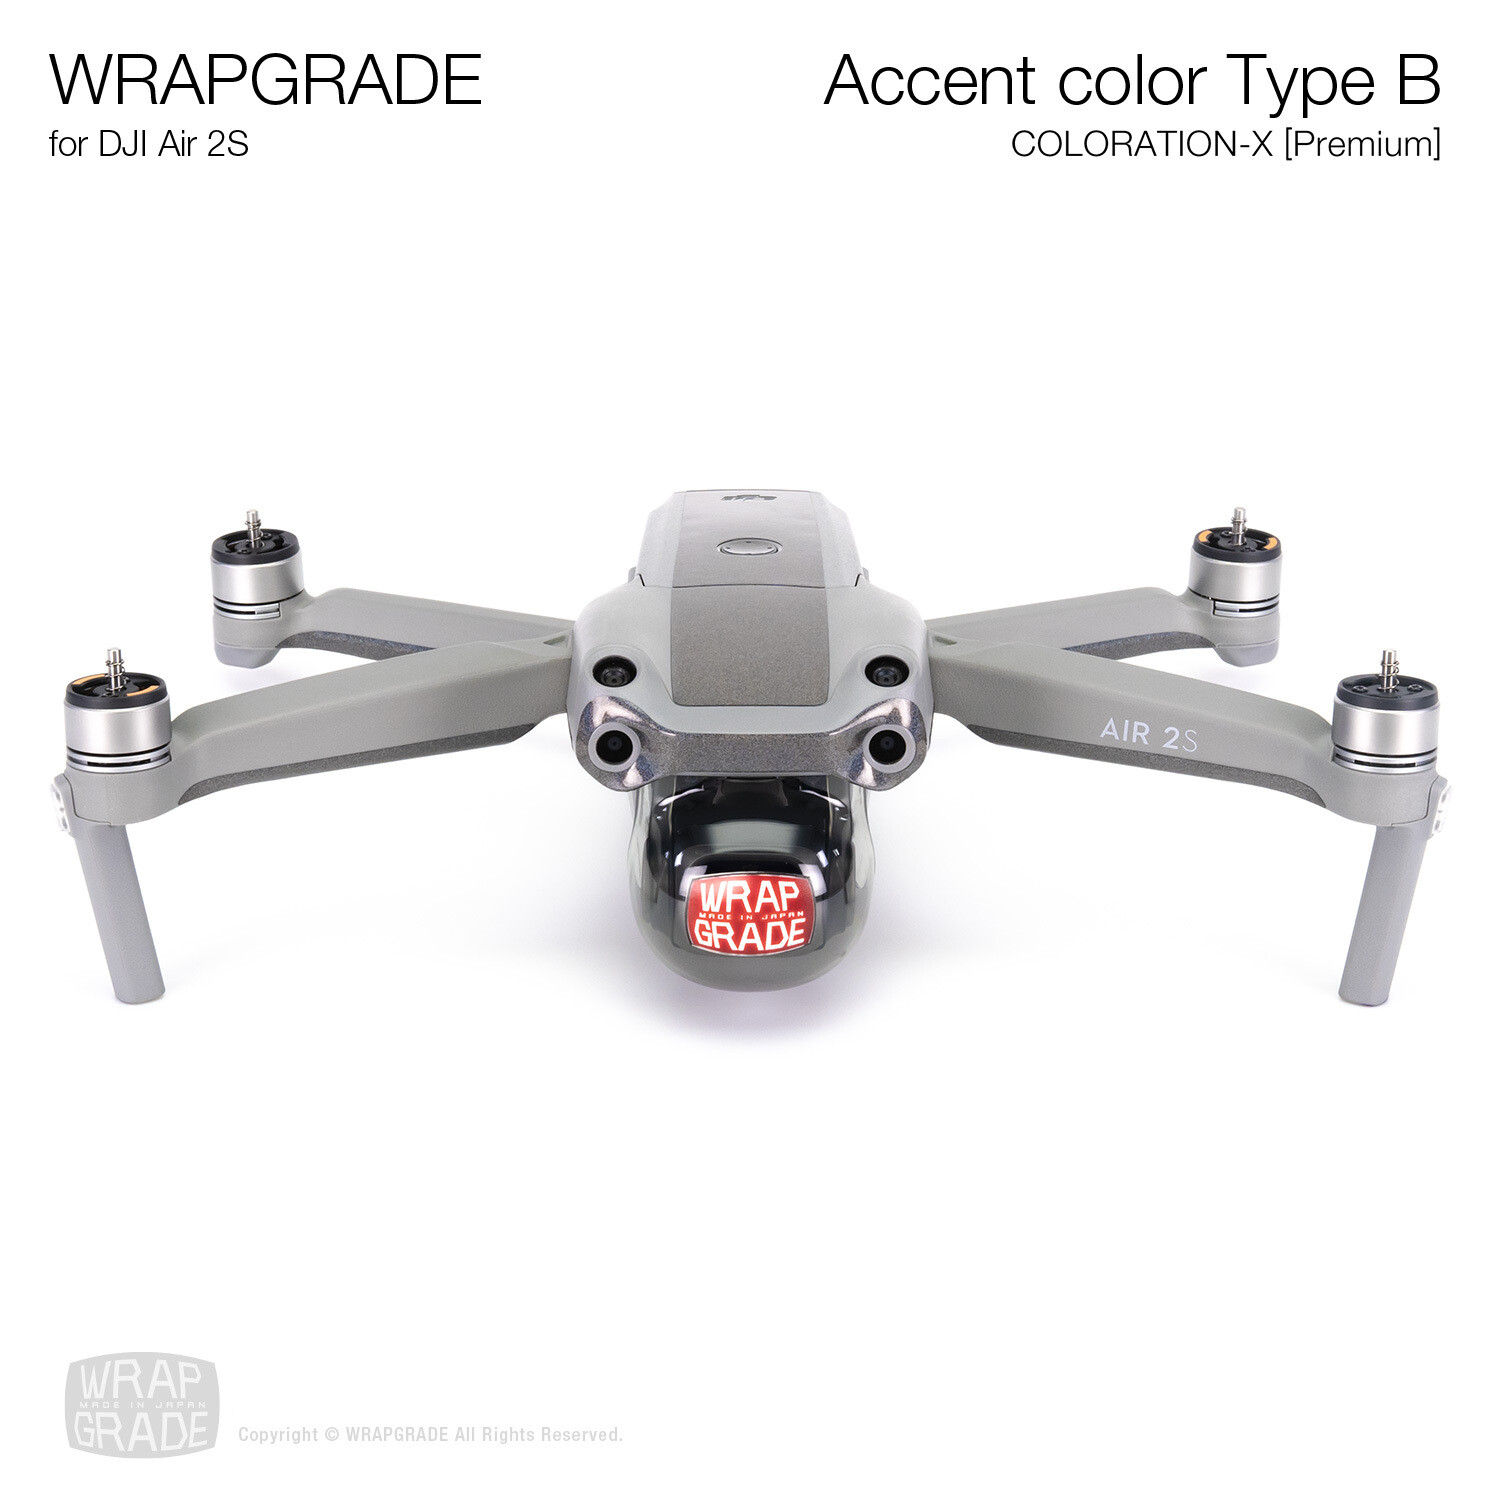 Wrapgrade Skin for DJI Air 2S | Accent Color B (COLORATION-X)